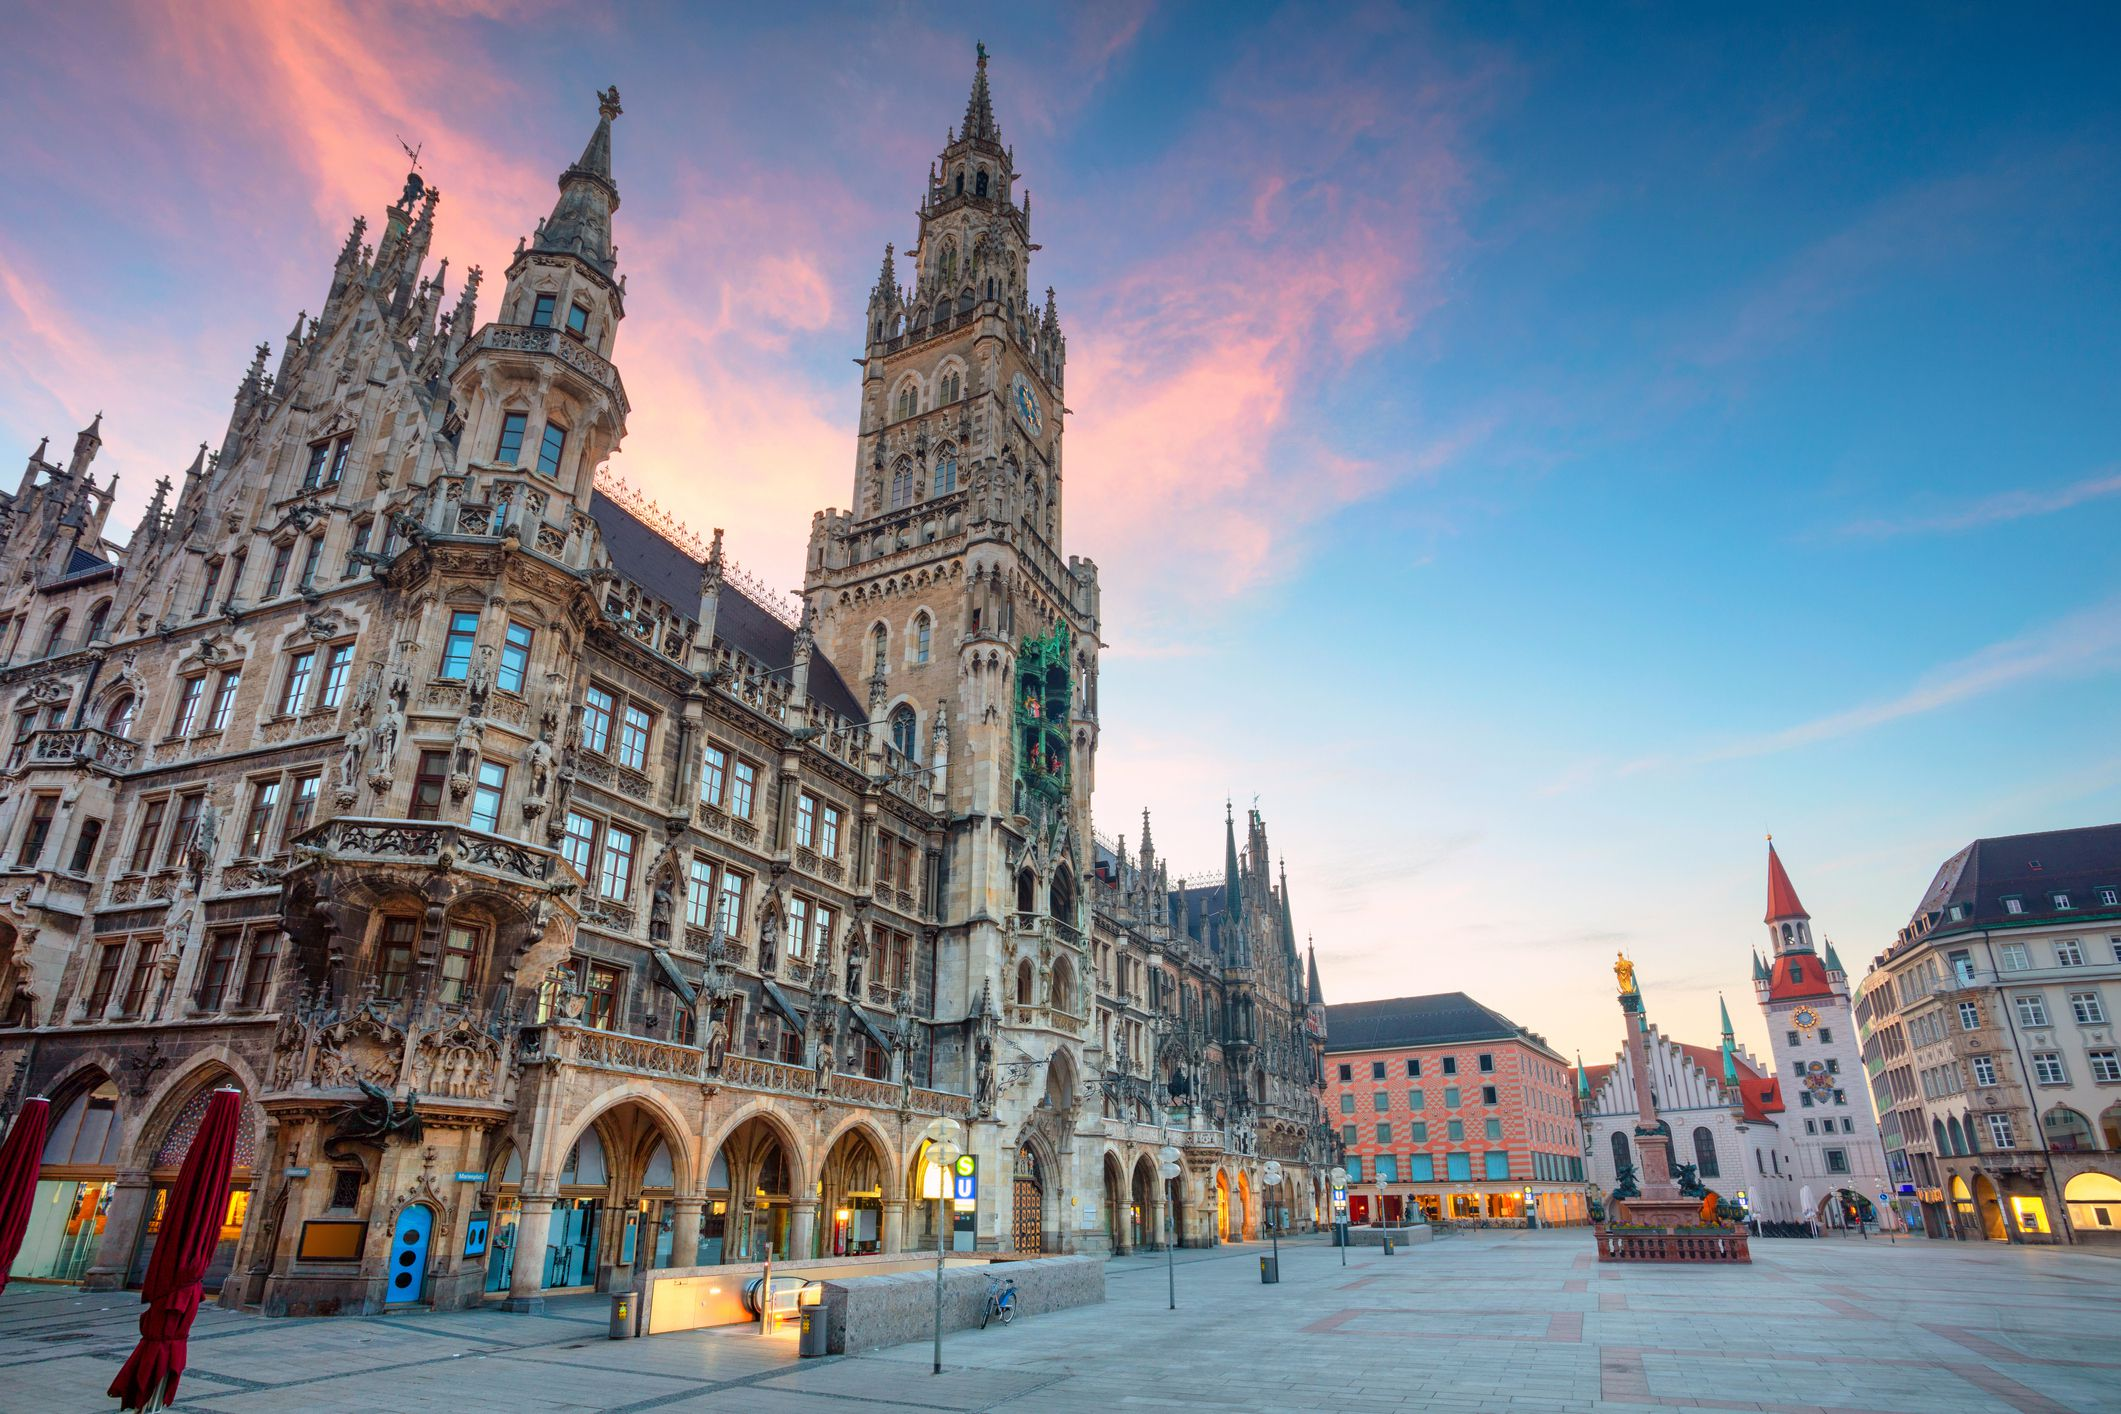 Marienplatz in Munich: The Complete Guide